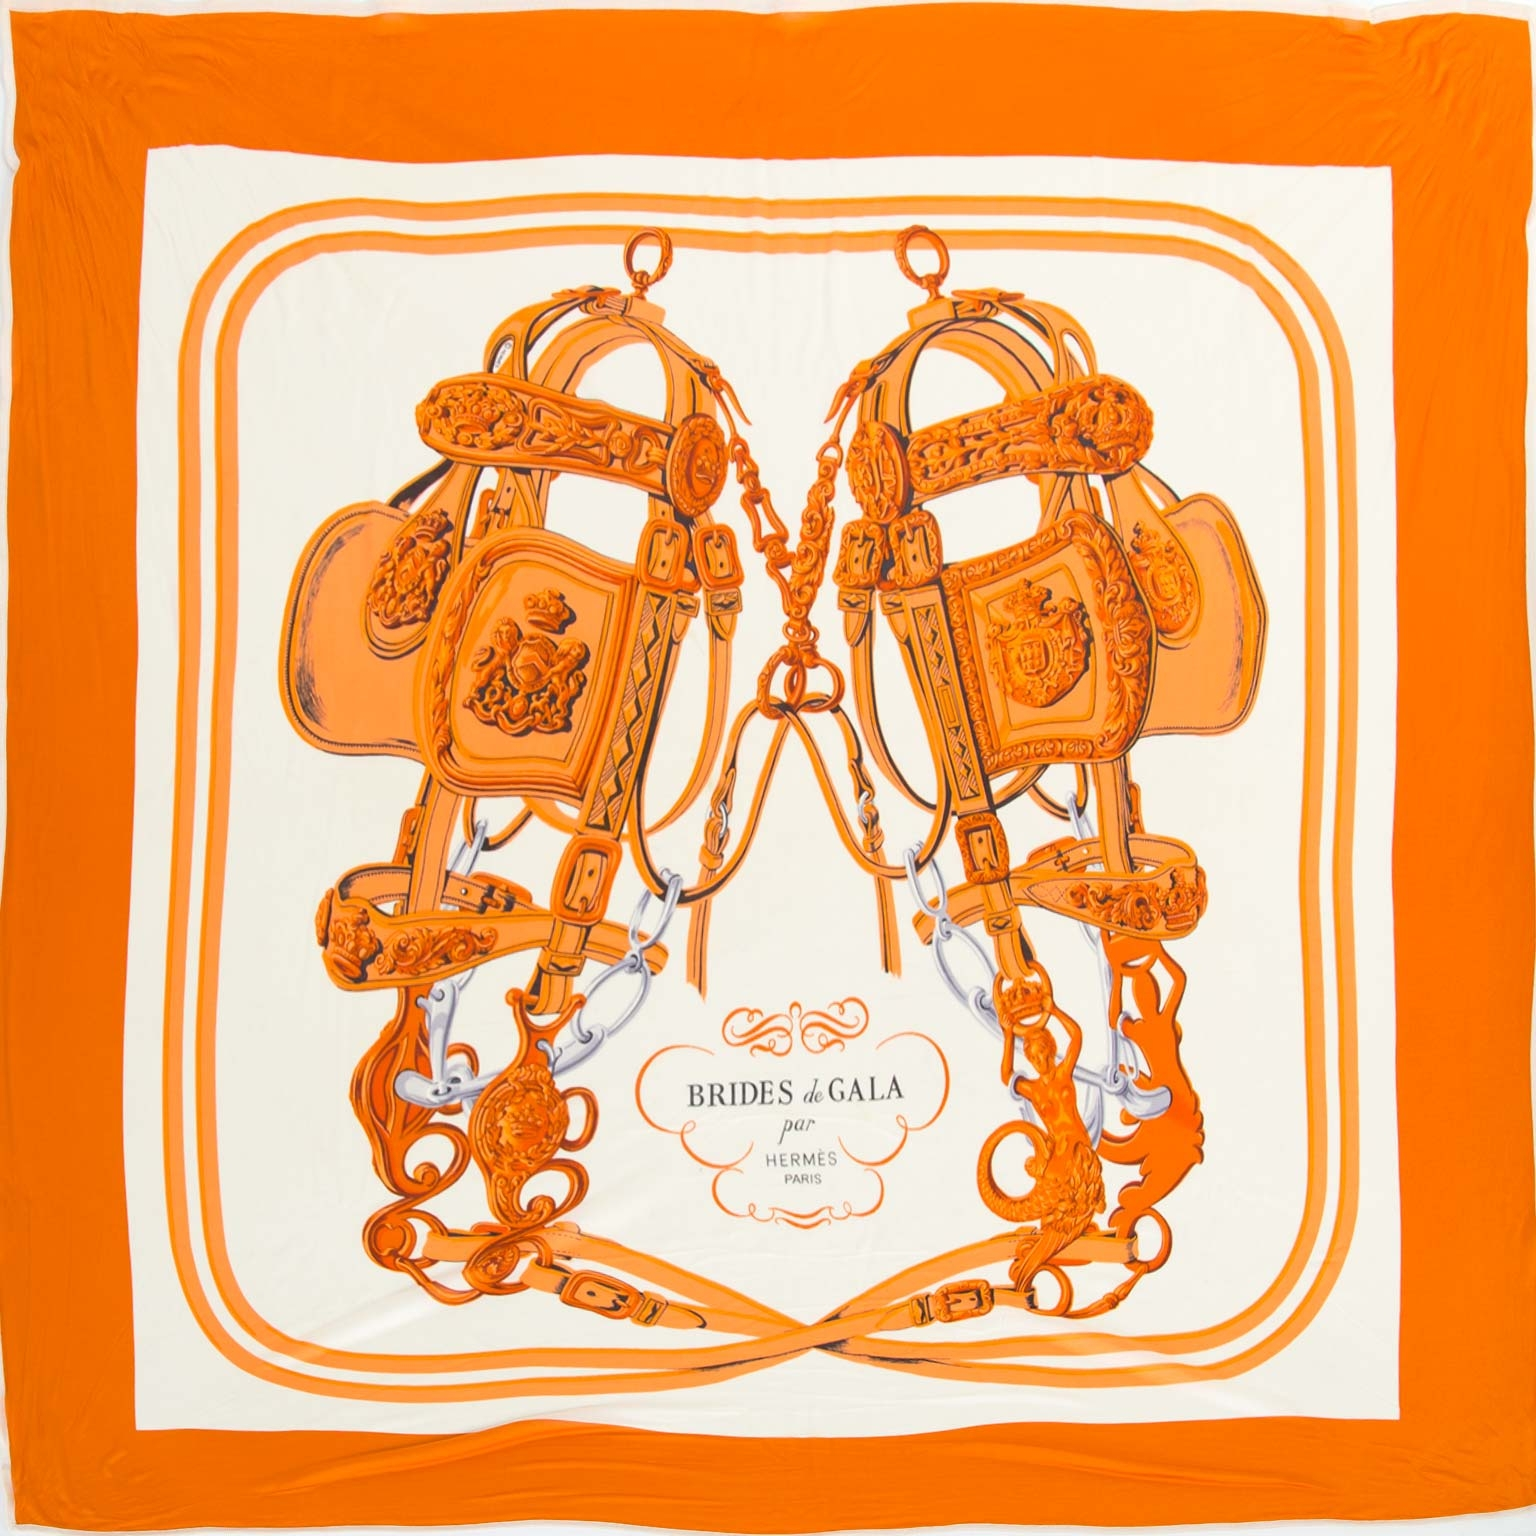 Hermès Silk Orange Bride De Gala Scarf te koop bij Labellov